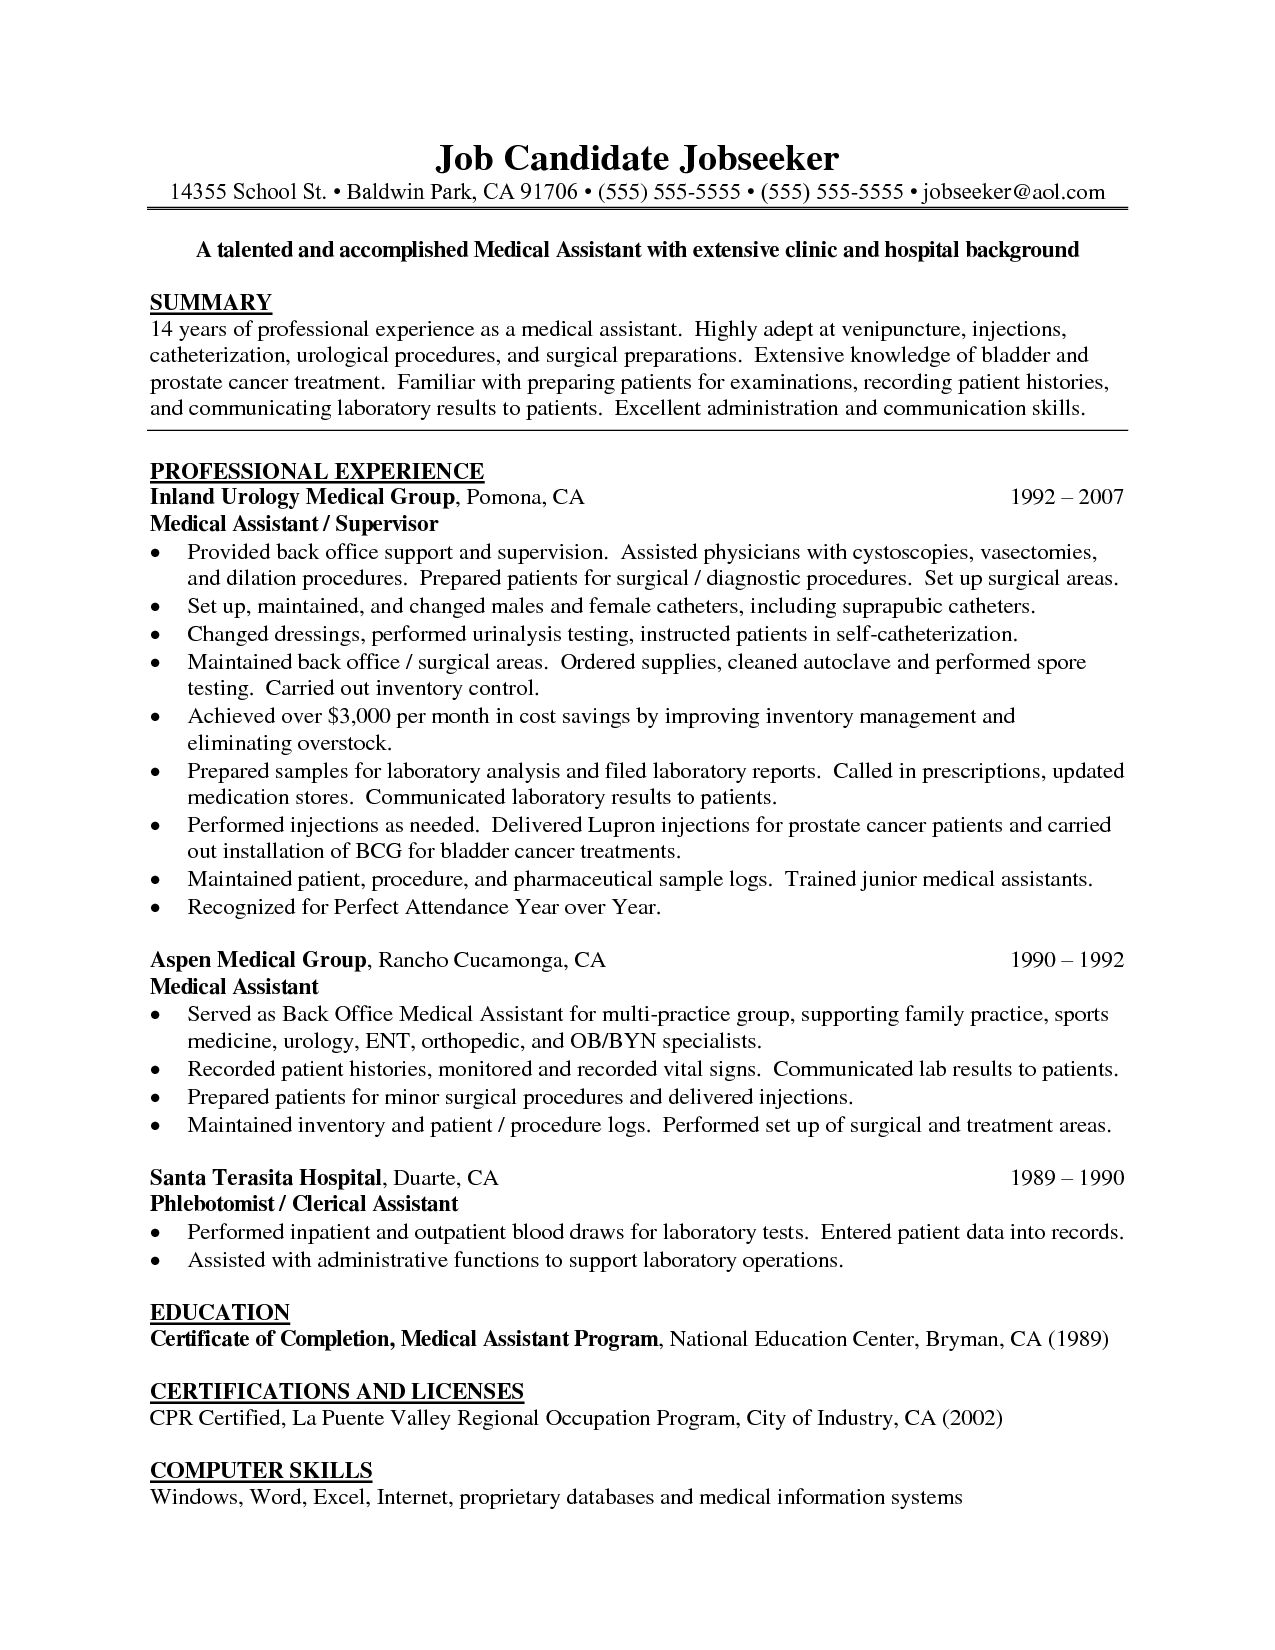 resumes for medical school paper writer perfect resume accounting job mcdonalds manager Resume Perfect Medical School Resume